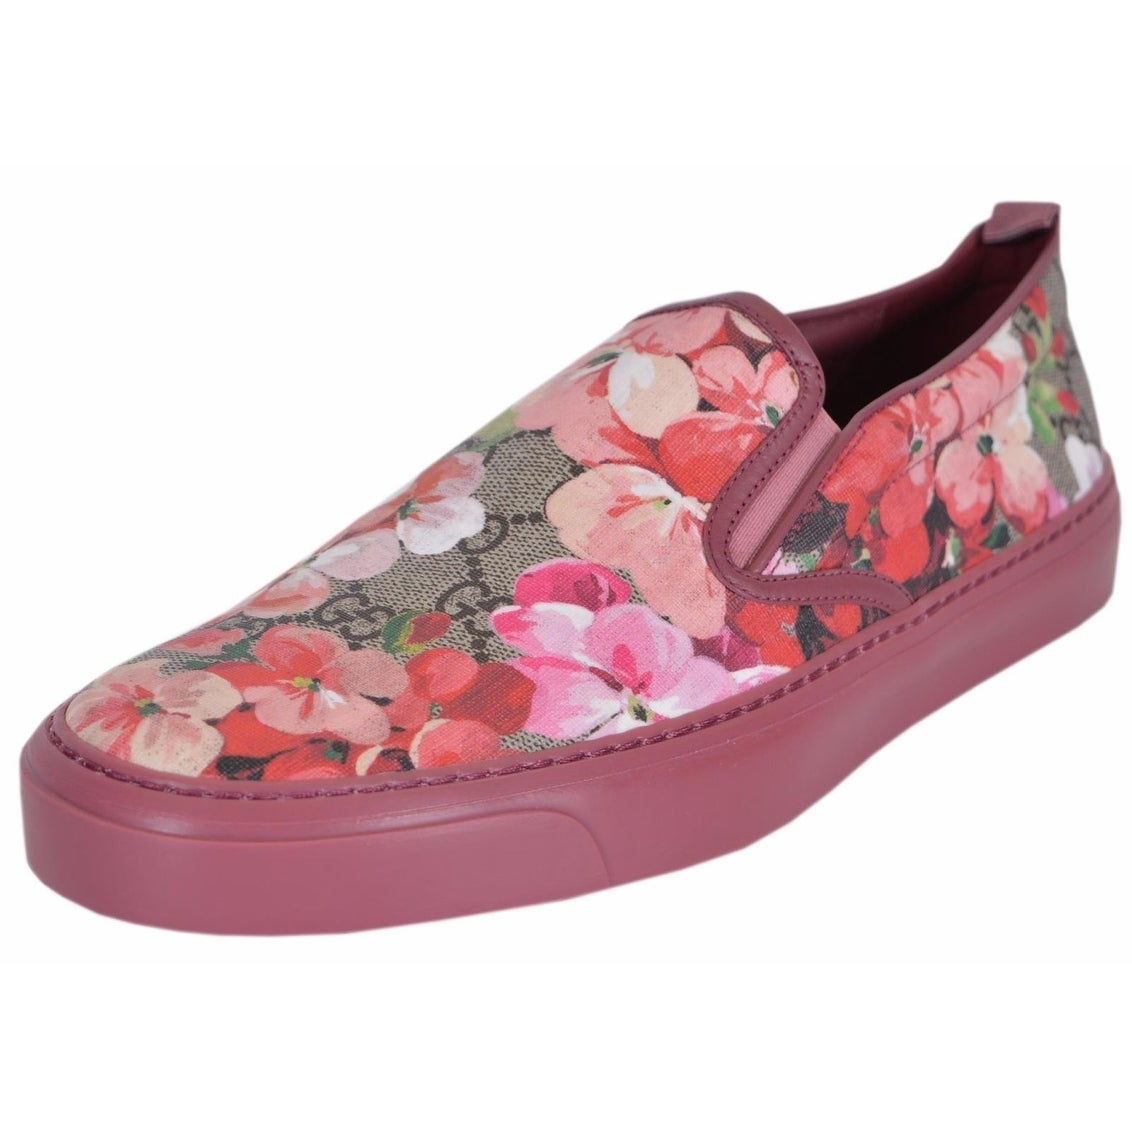 Shop Gucci Women s GG Supreme Canvas Pink Blooms Slip On Sneakers ... a24e55b8c